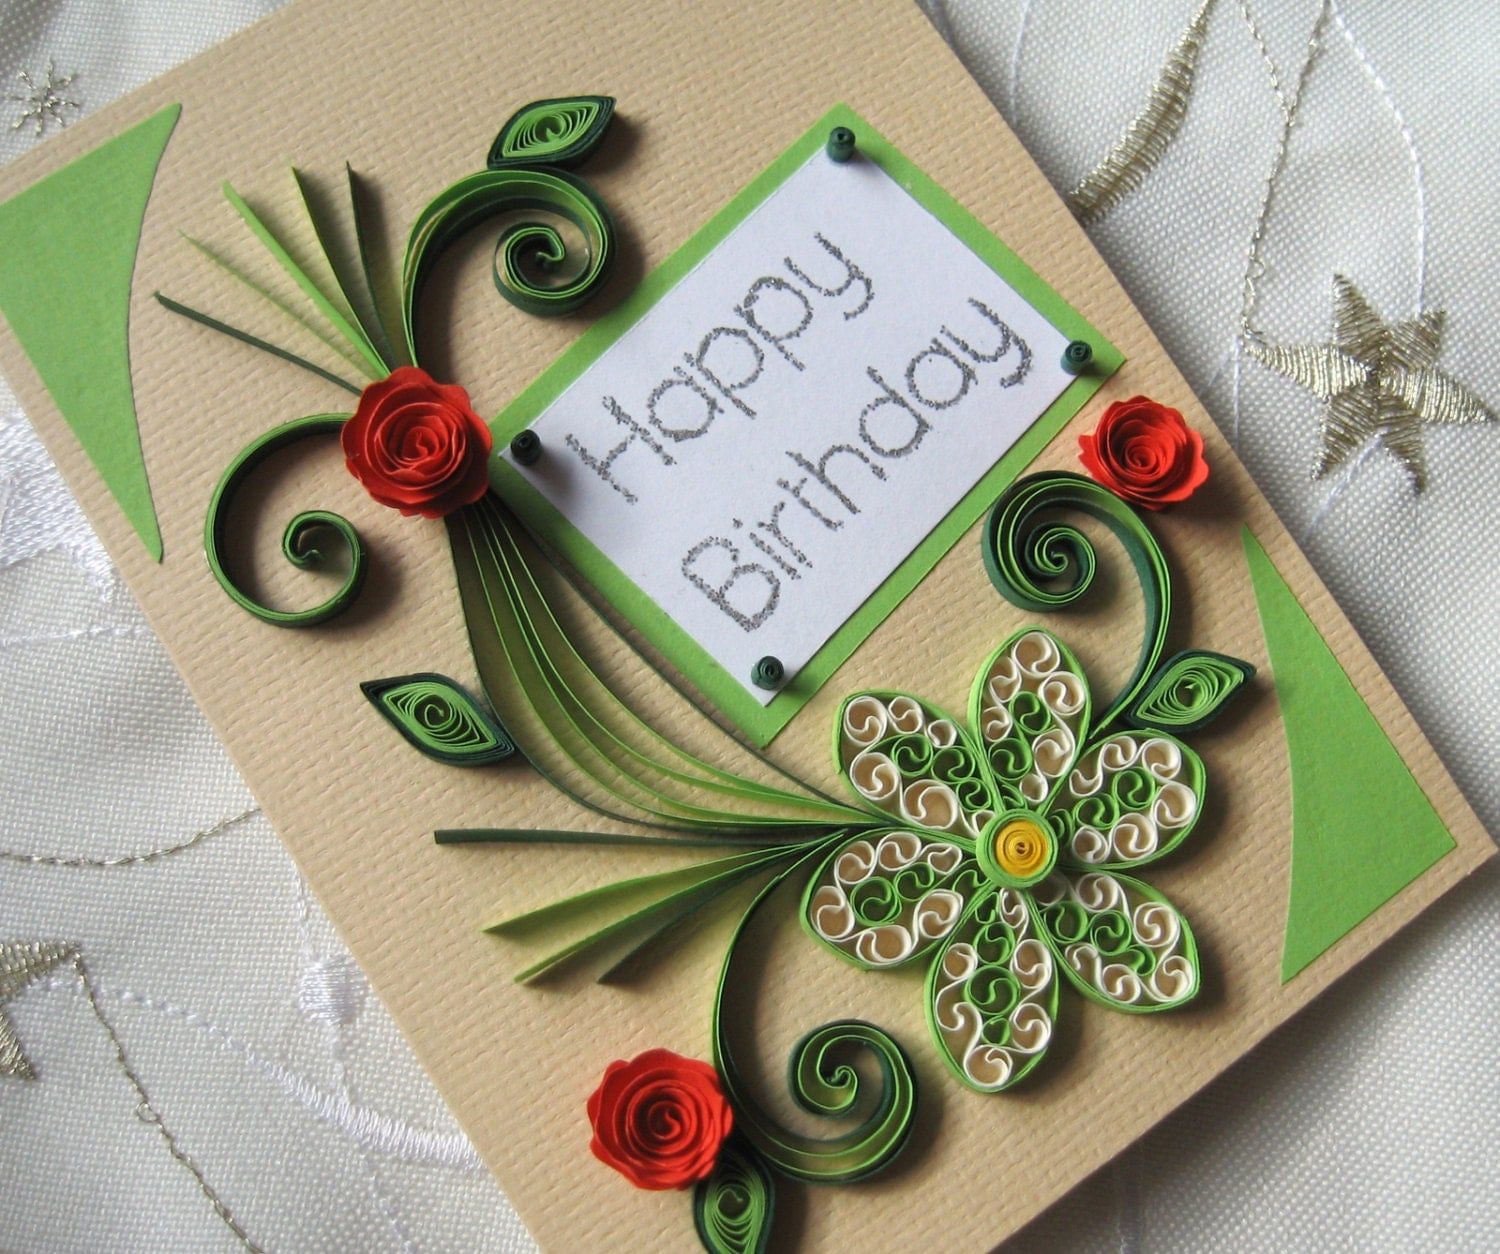 Happy Birthday Card Handmade Quilling Card Quilled – Handmade Birthday Card Design